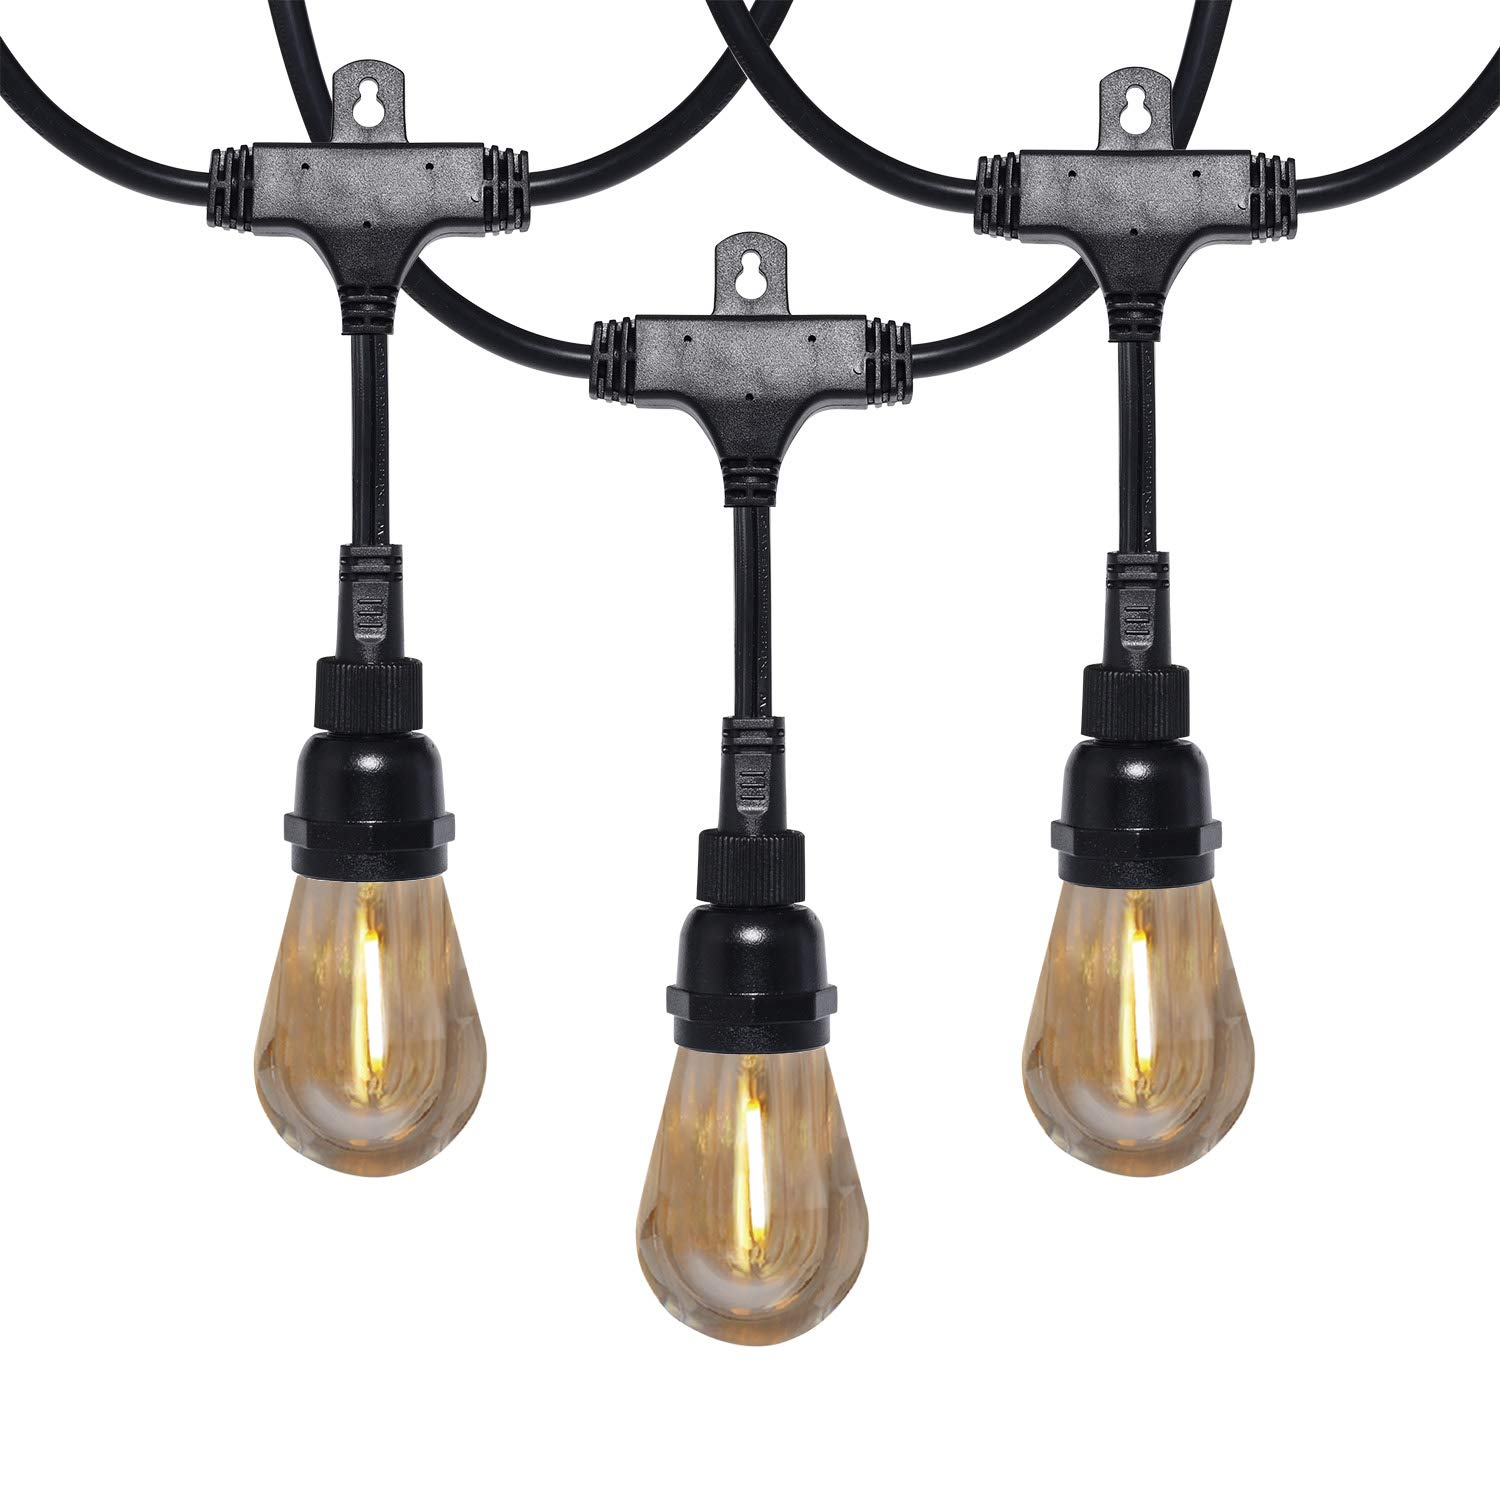 Honeywell Waterproof LED Outdoor String Lights, 48 Ft Commercial Grade Patio Lights, Create Cafe Lighting Ambience in Your Backyard